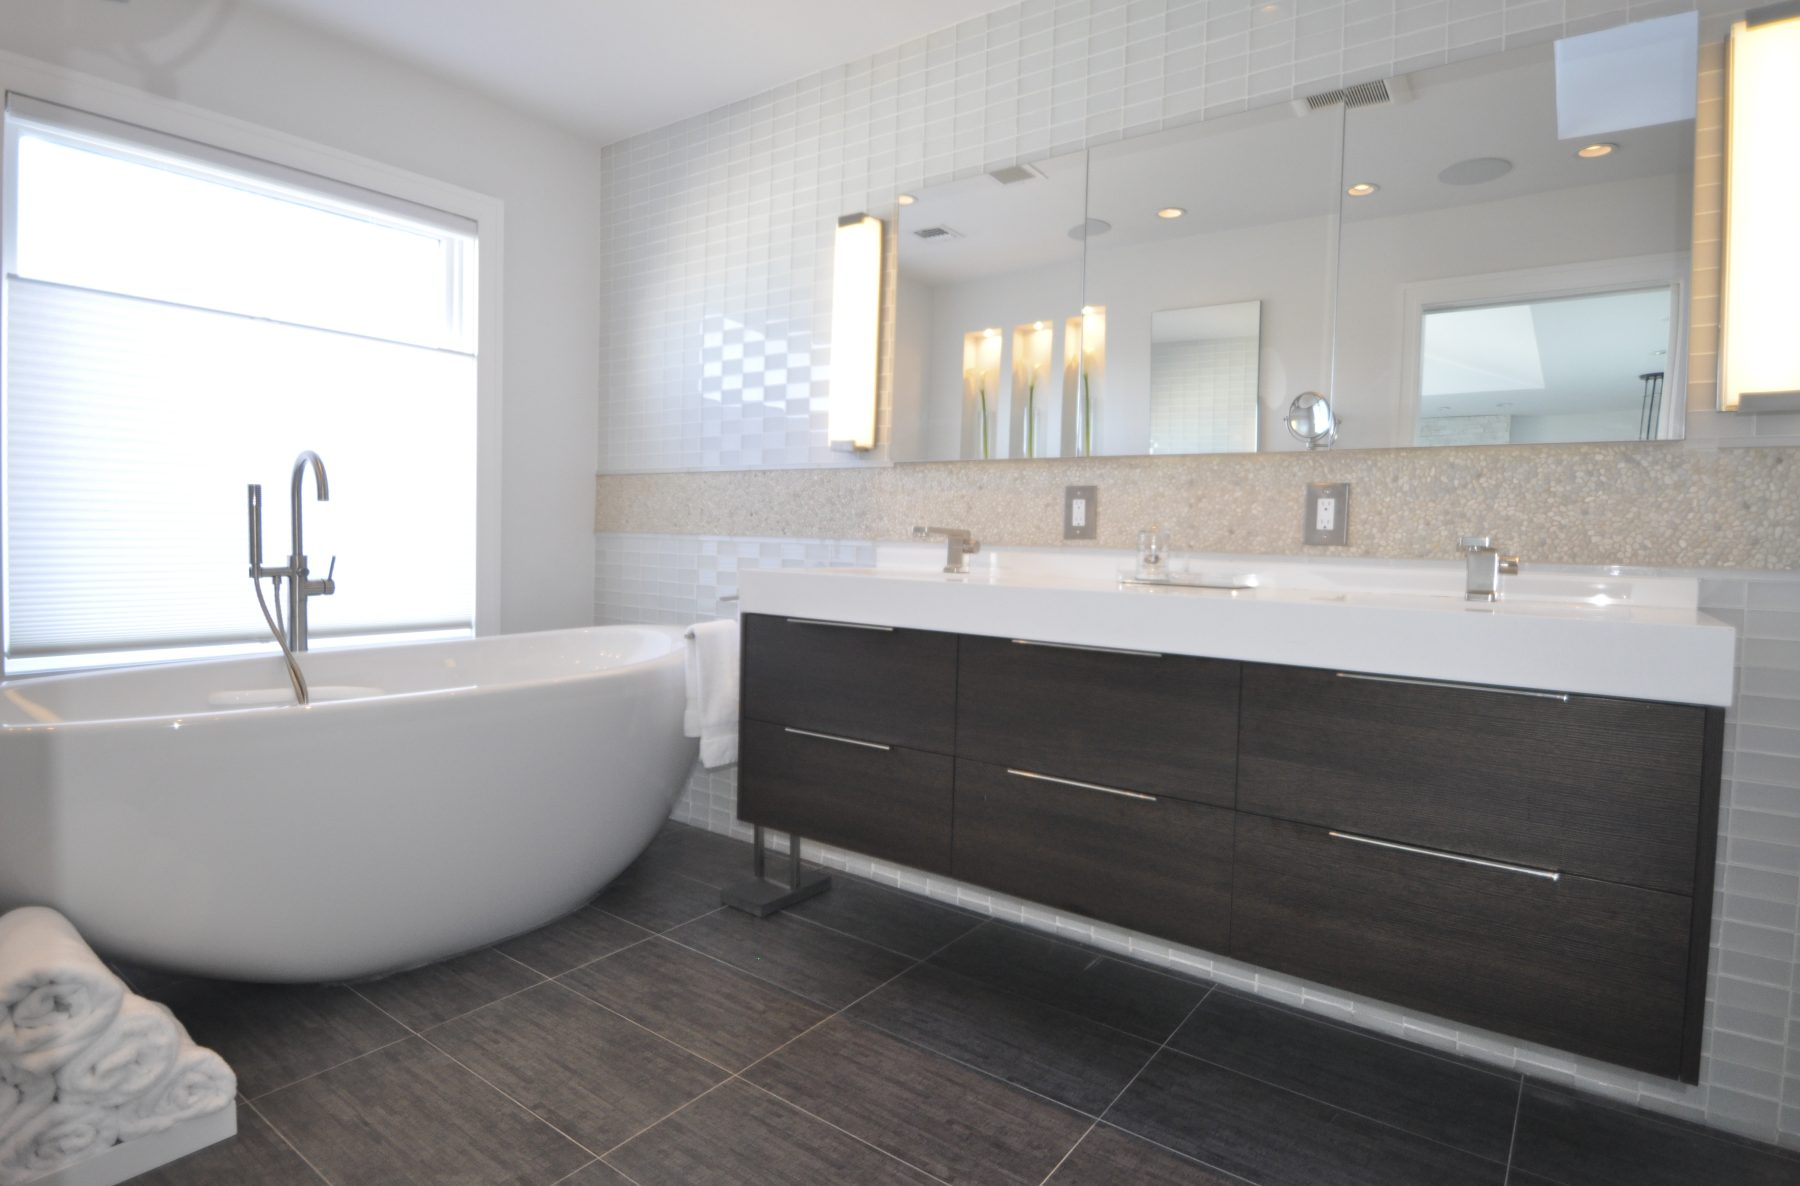 How much to fit a new bathroom - Let Us Work With You To Create Your Ideal New Bathroom Choosing The Highest Quality Materials To Fit Your Budget